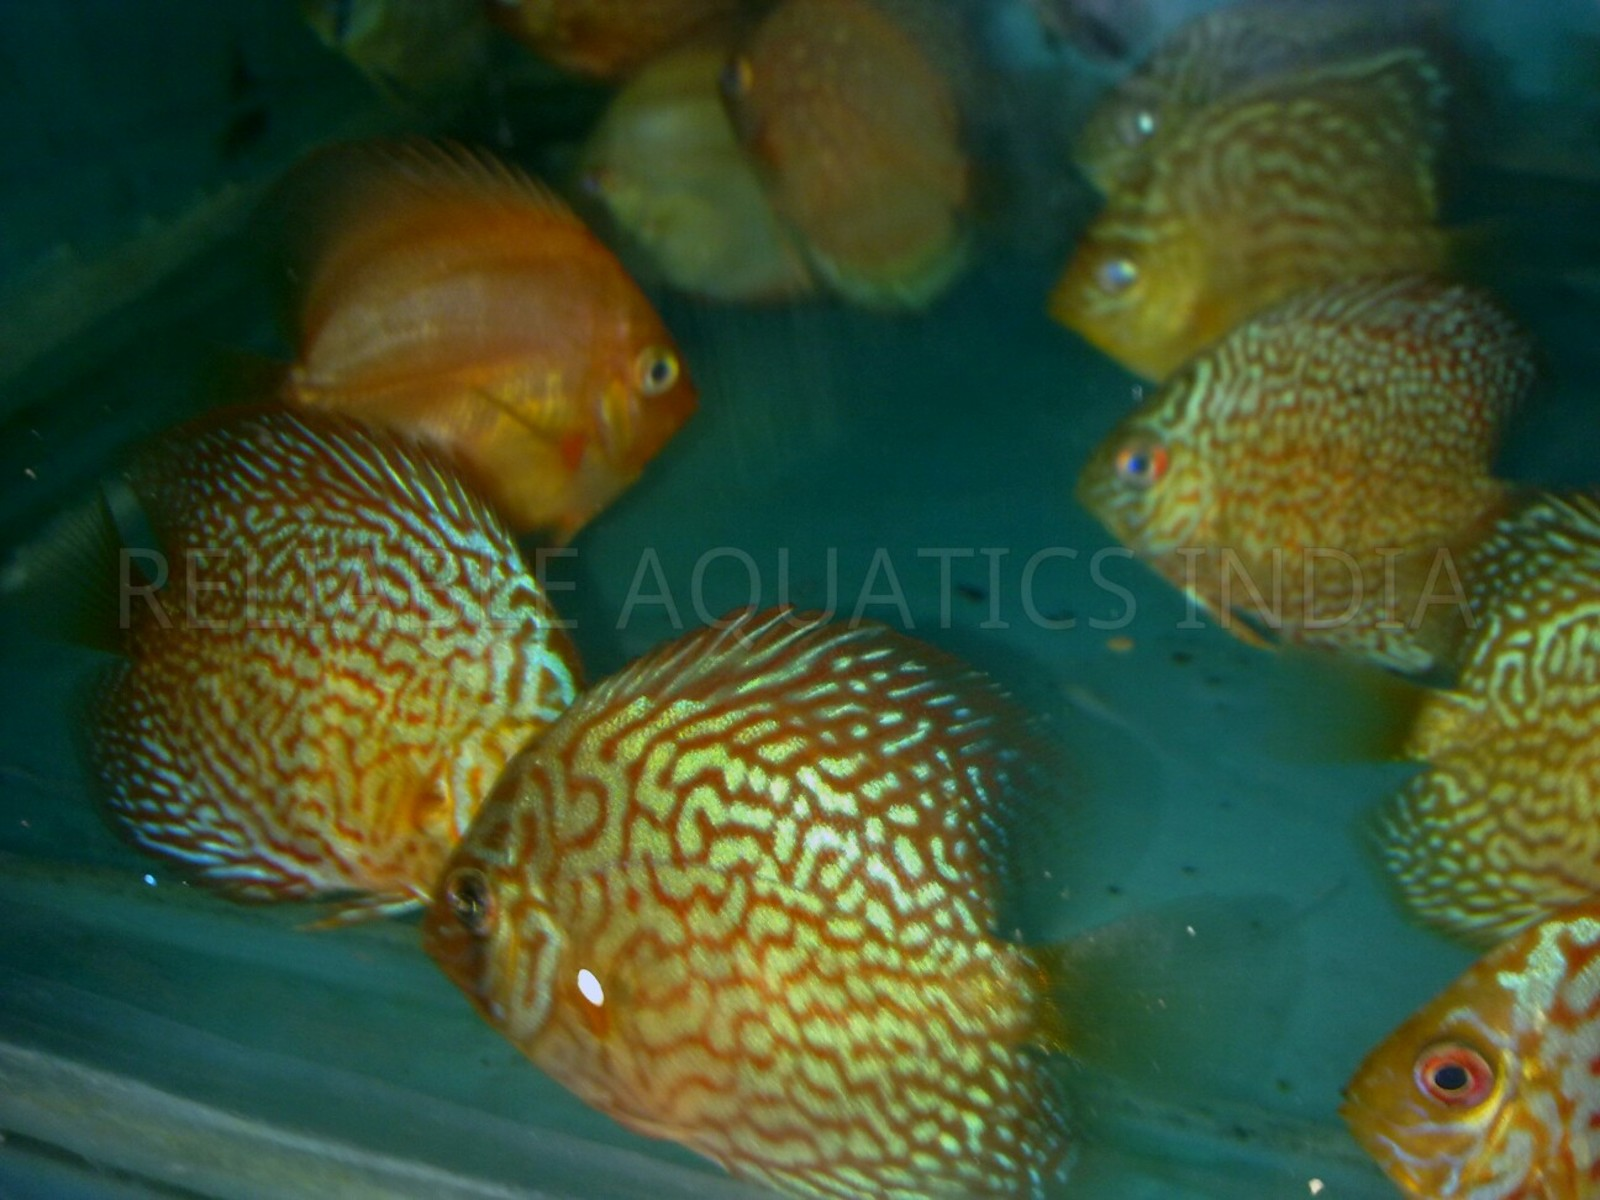 Imported Discus from Bangkok in India to grow in my Hatchery | by Tirthabrata Panja